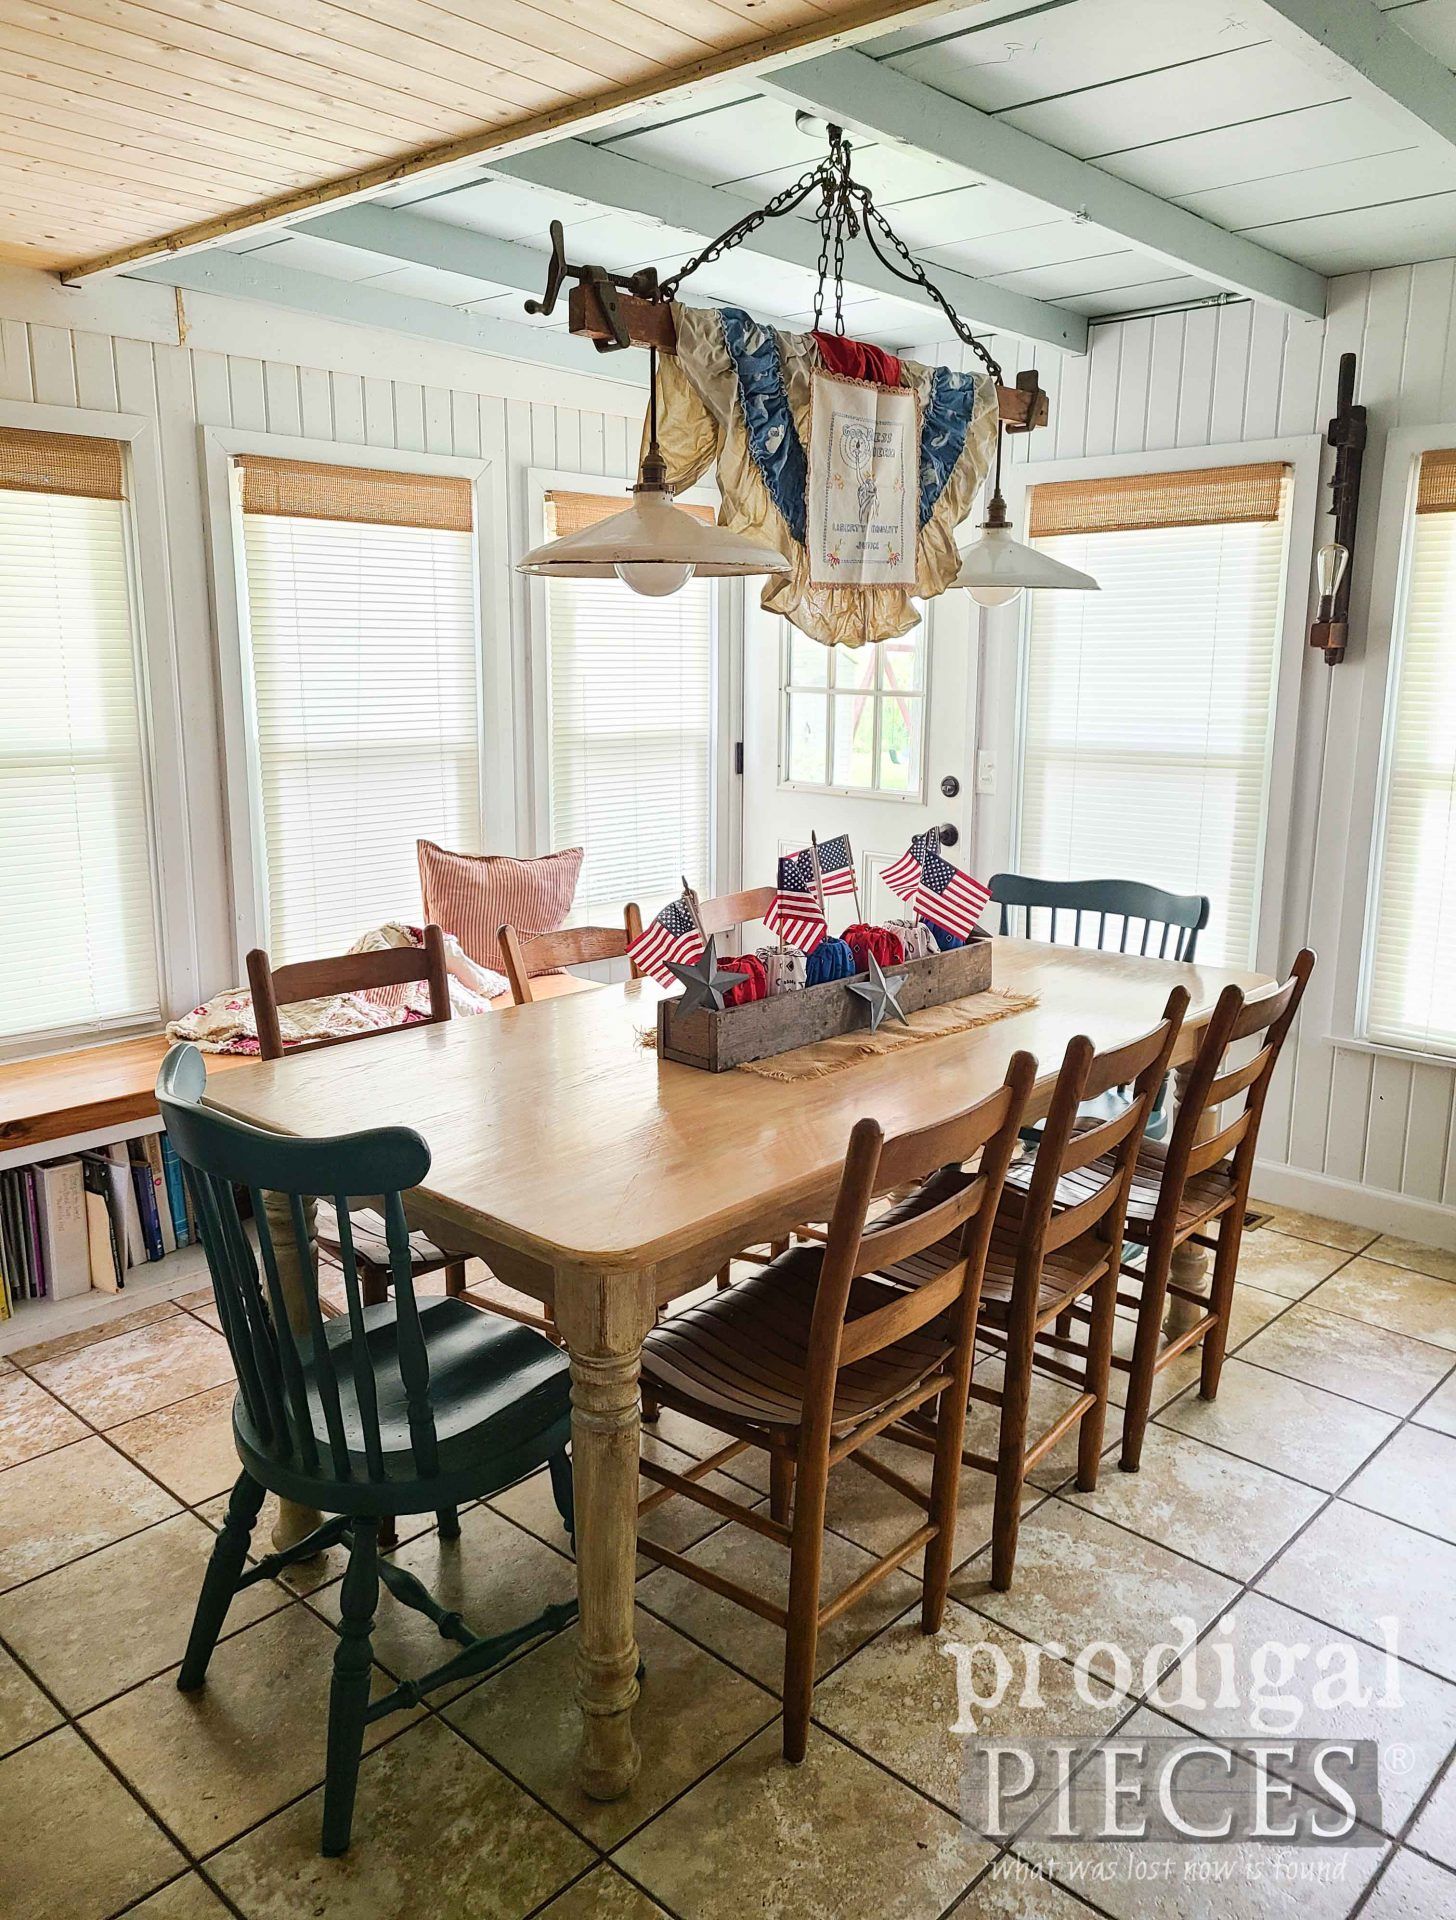 Patriotic Dining Table with Refashioned Bandanas and Vintage Style by Larissa of Prodigal Pieces | prodigalpieces.com #prodigalpieces #home #farmhouse #diy #refashioned #diy #4thofjuly #independenceday